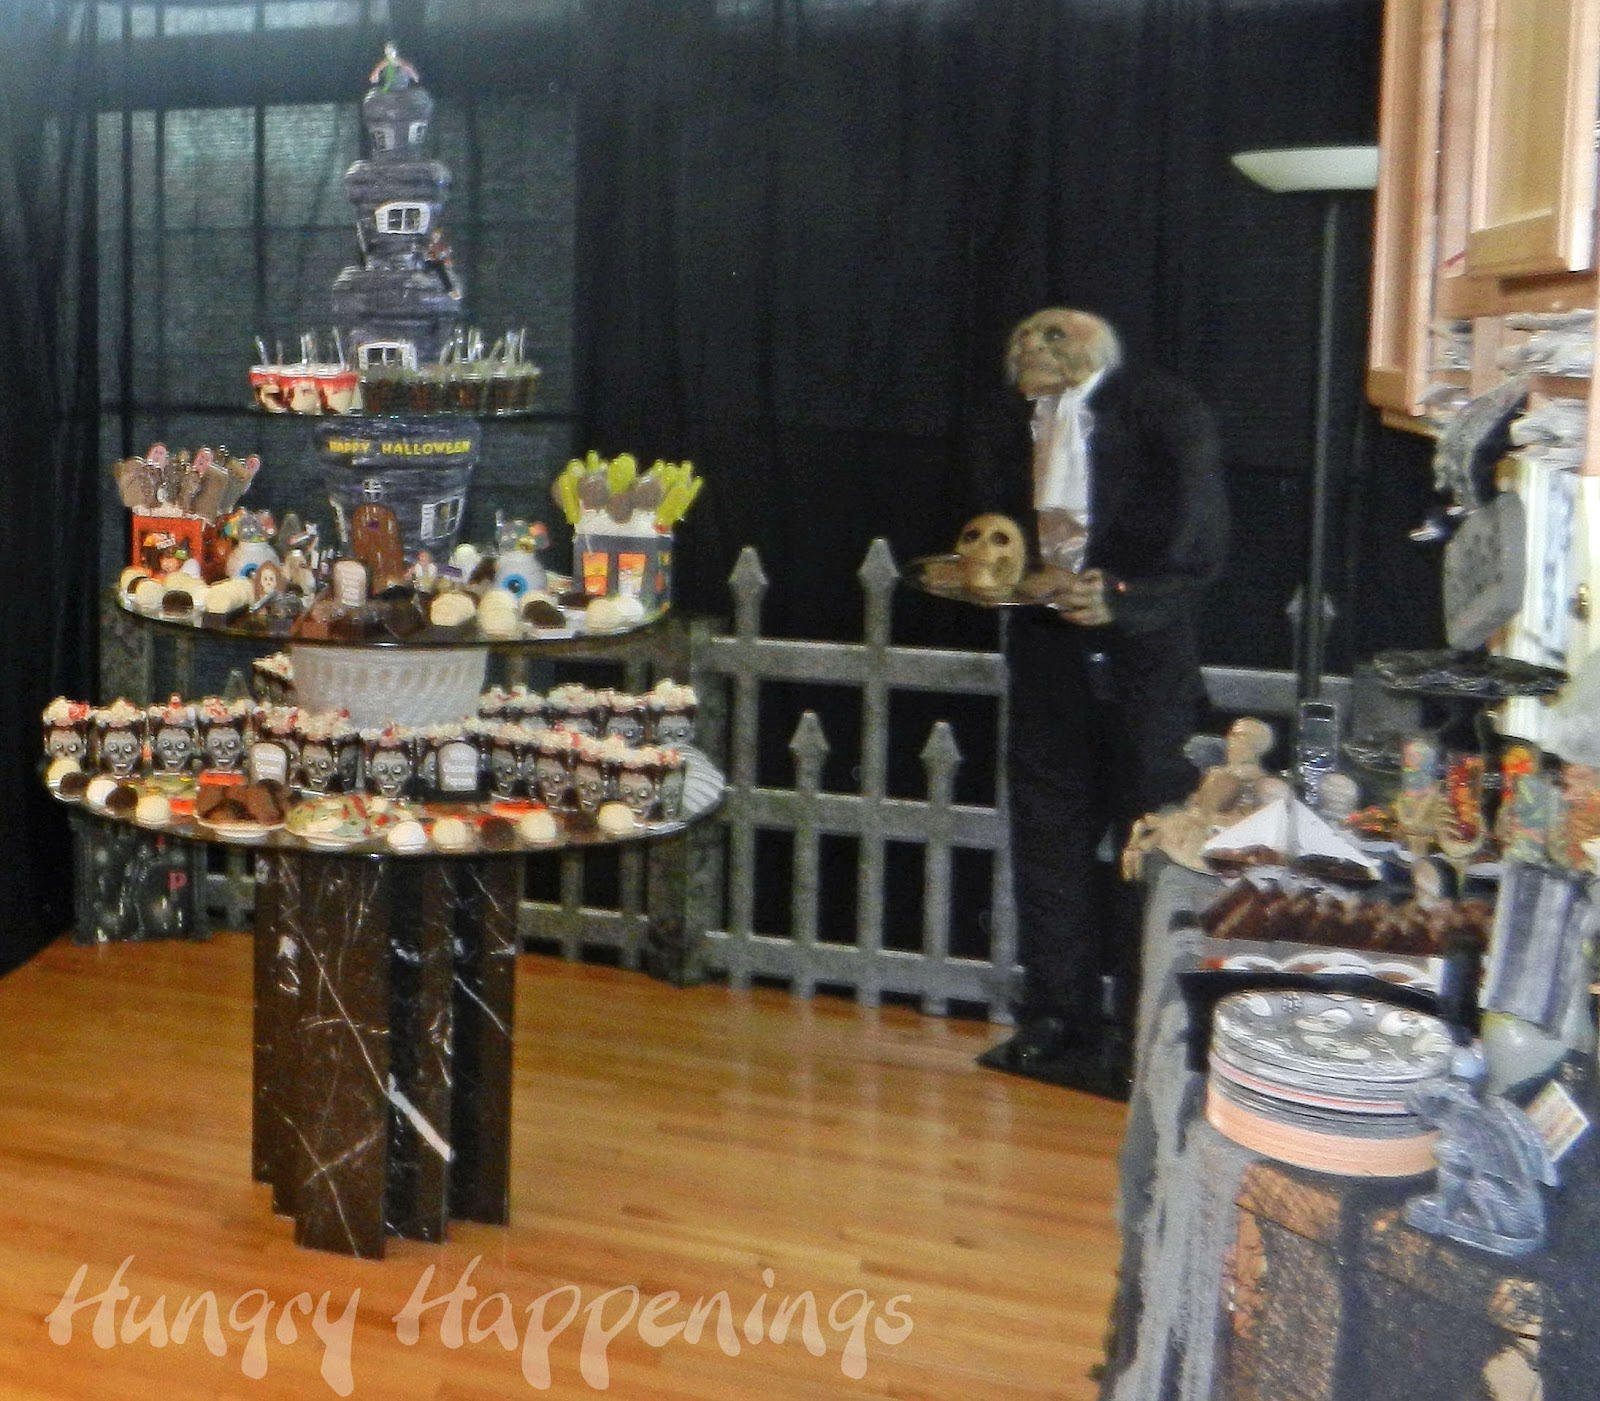 Halloween Dessert Display & Zombie Party - Party Planning Ideas for your Zombie Themed Event